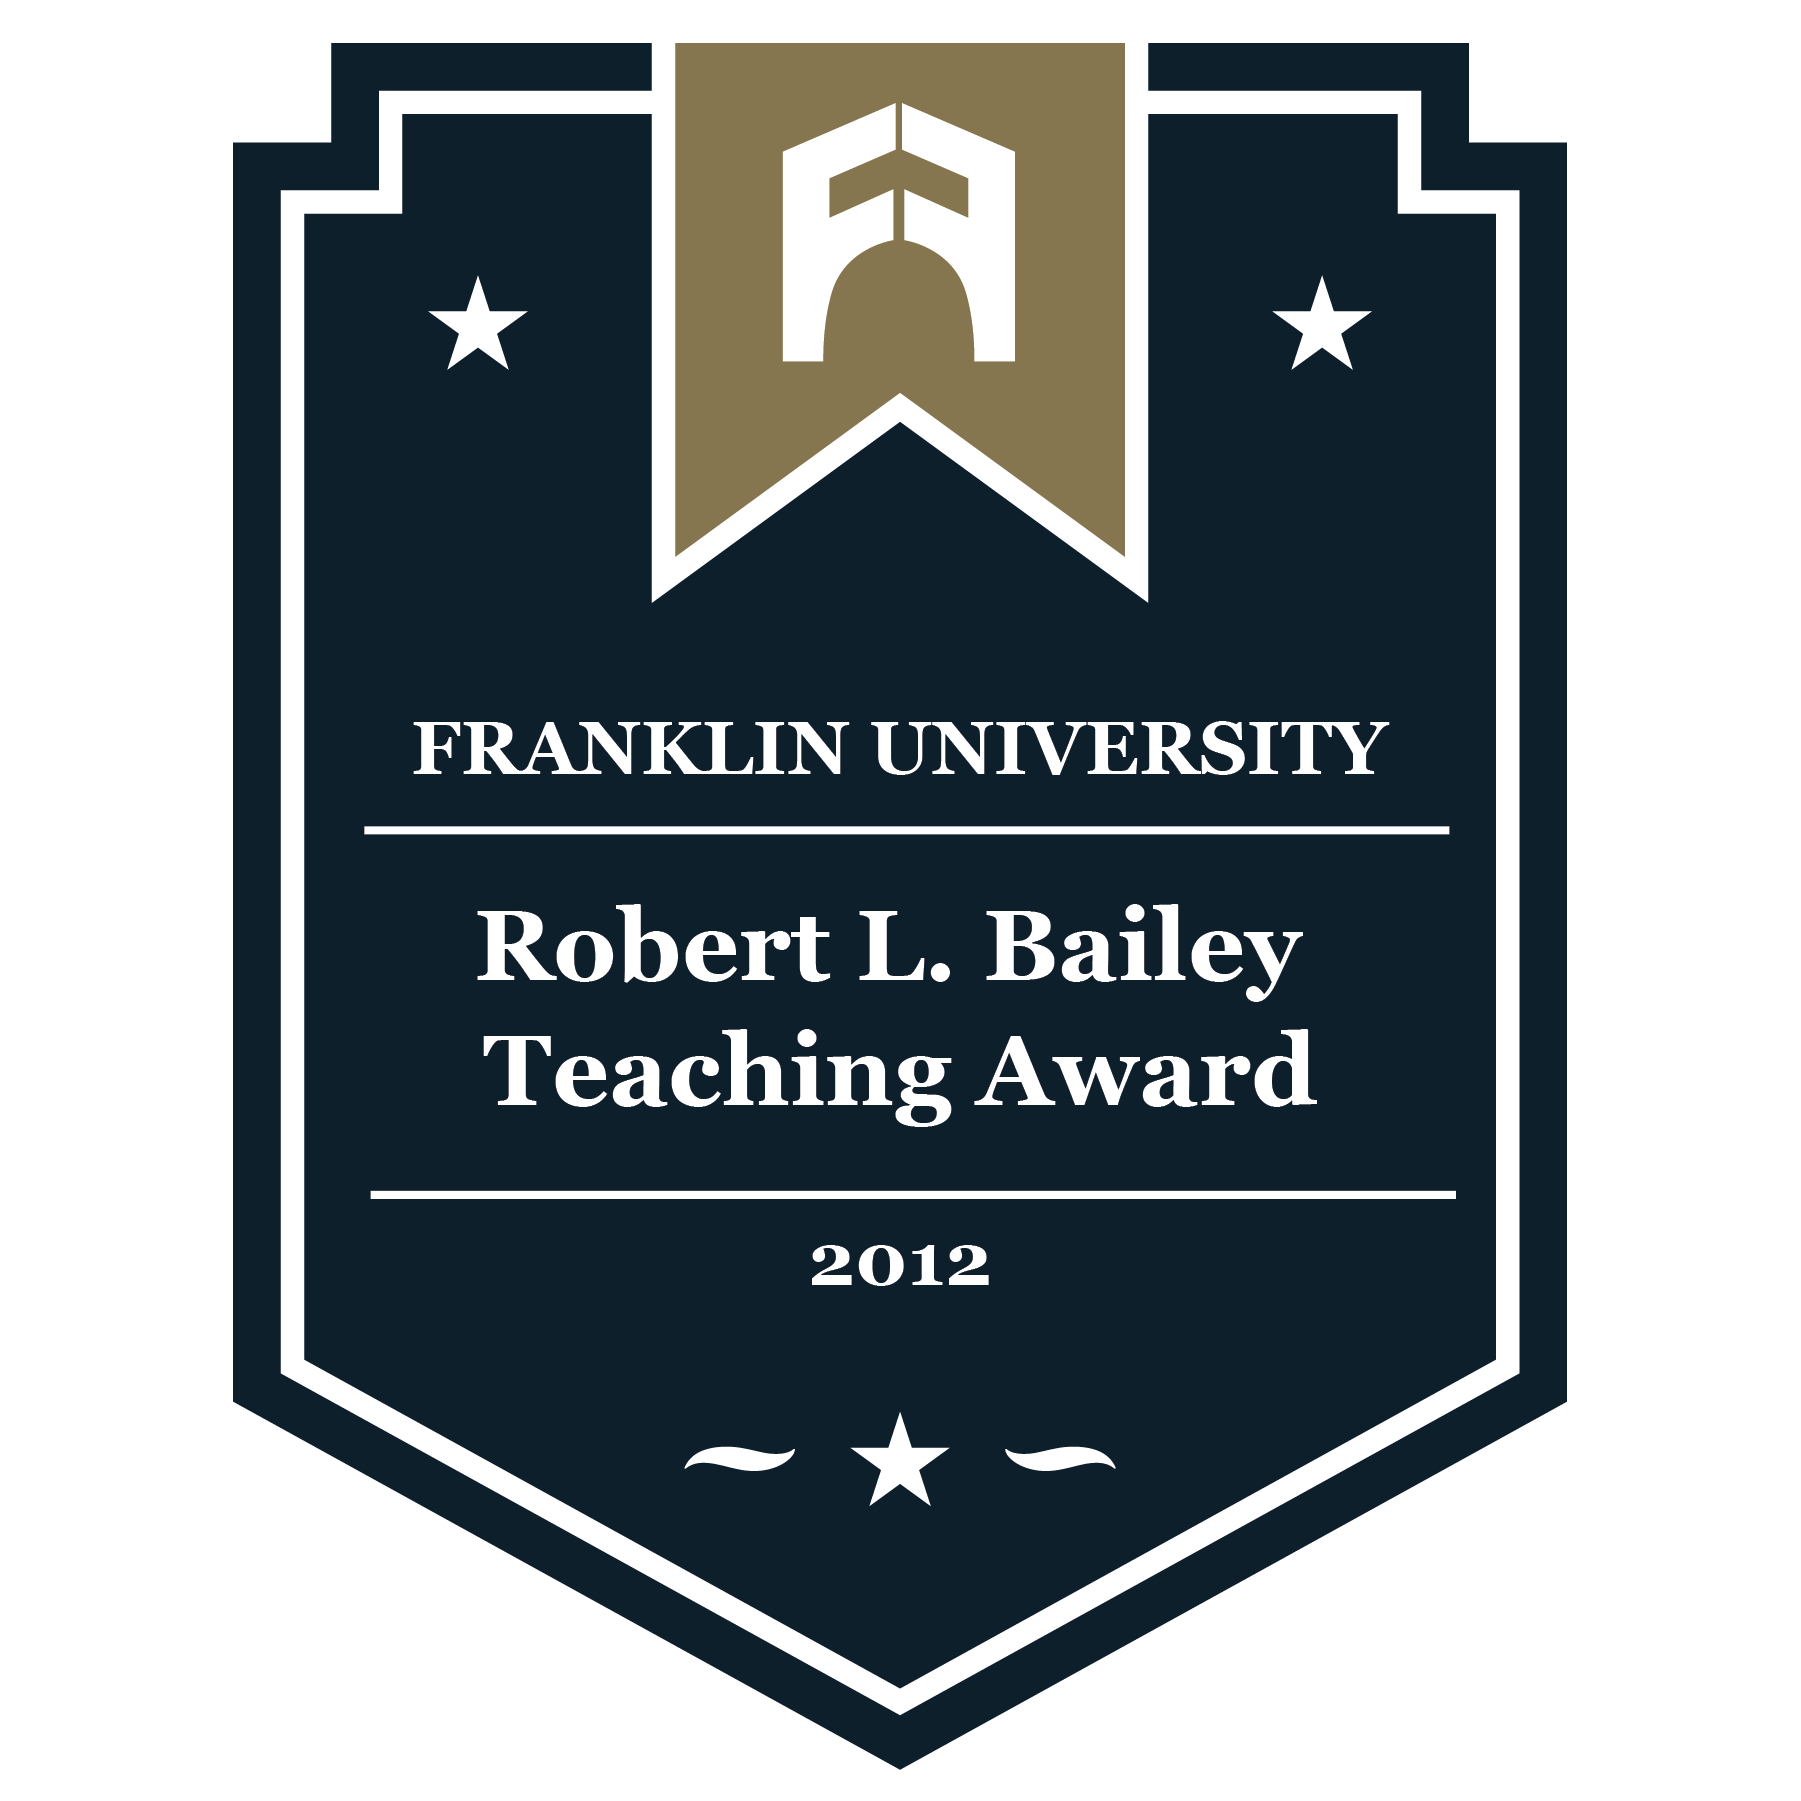 2012 Robert L. Bailey Teaching Award